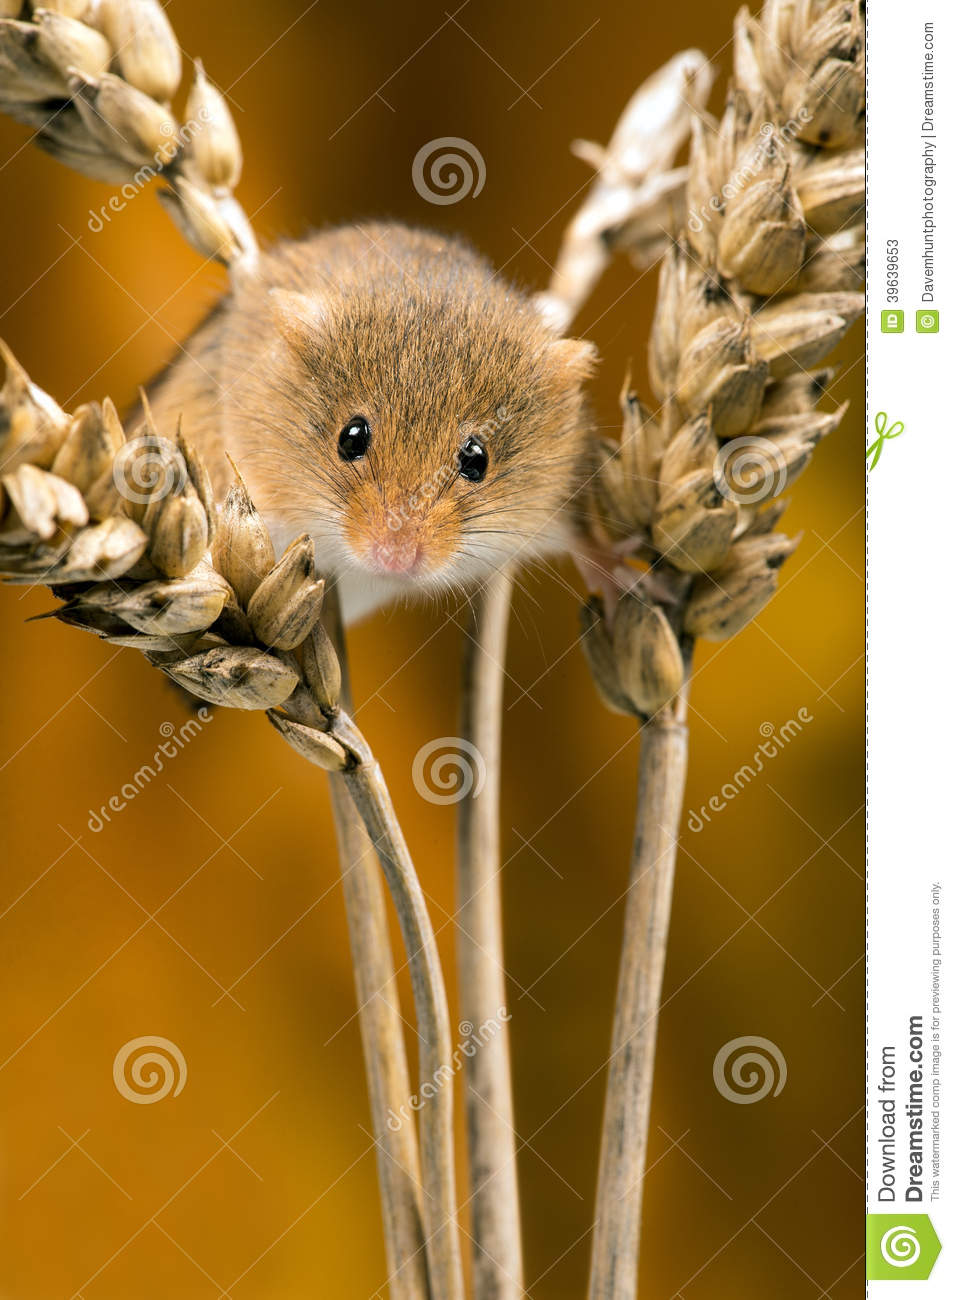 Mouse field hides between the tiles royalty free stock for Field mouse cartoon